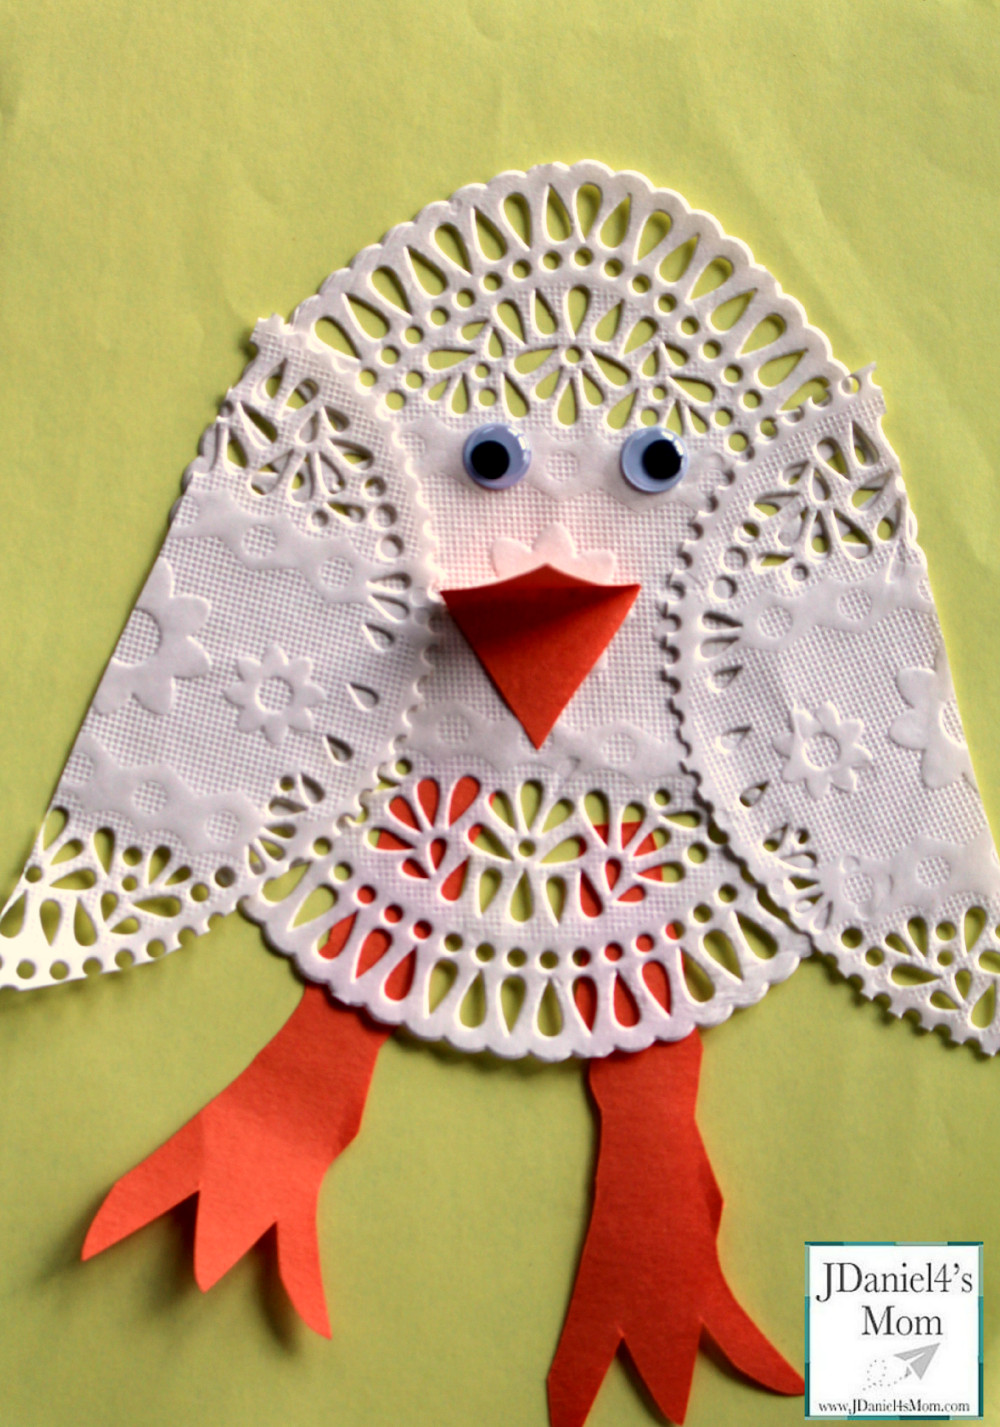 Paper Doily Crafts Beautiful Easter Arts and Crafts Doily Chick Of Beautiful 42 Images Paper Doily Crafts